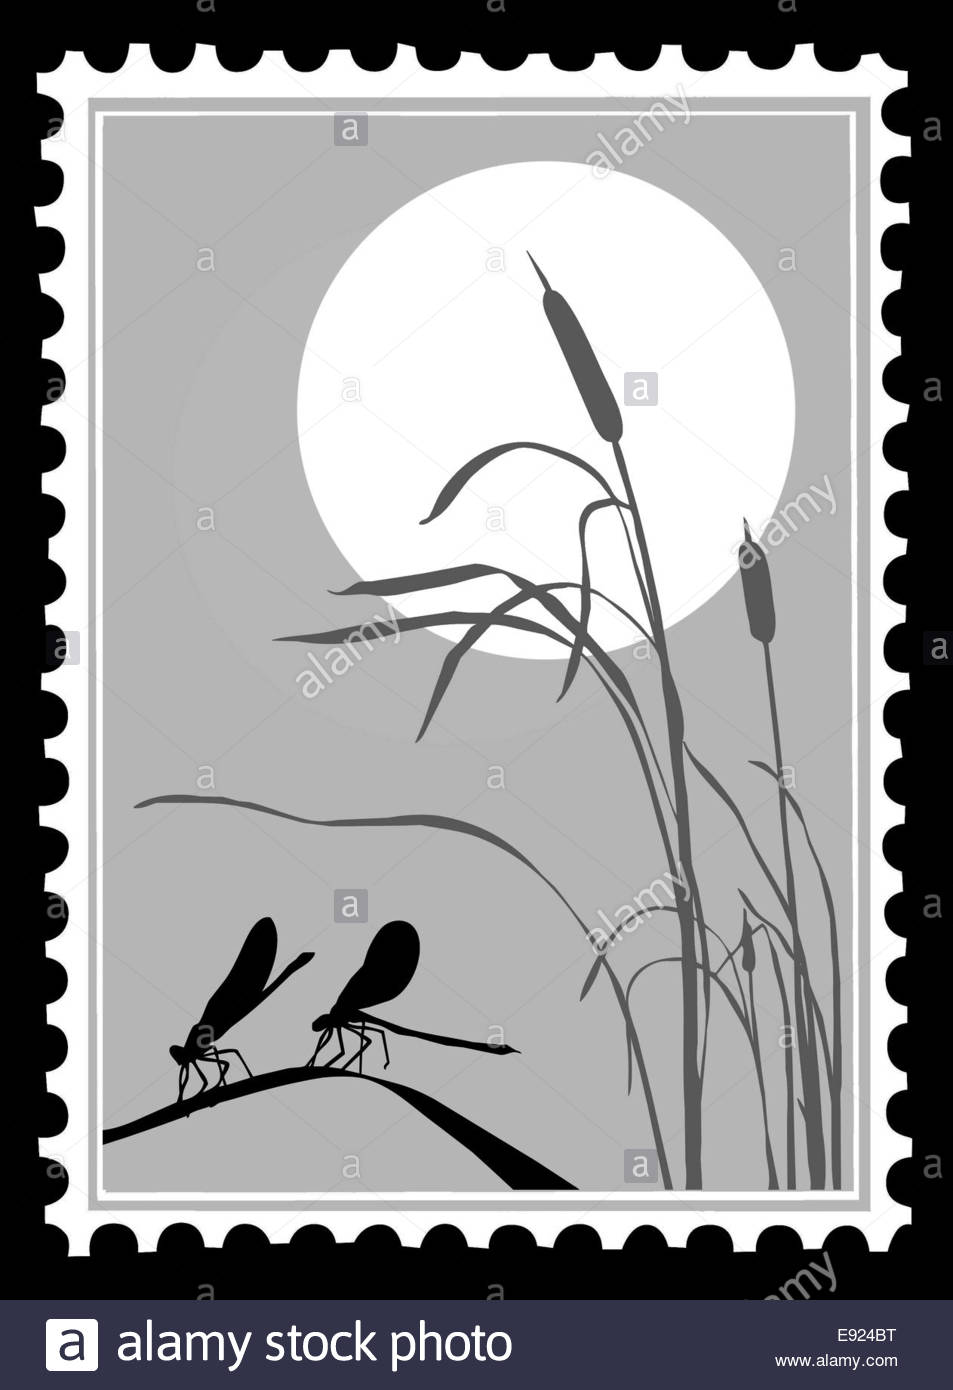 silhouette dragonfly on postage stamps stock photo 74420748 alamy